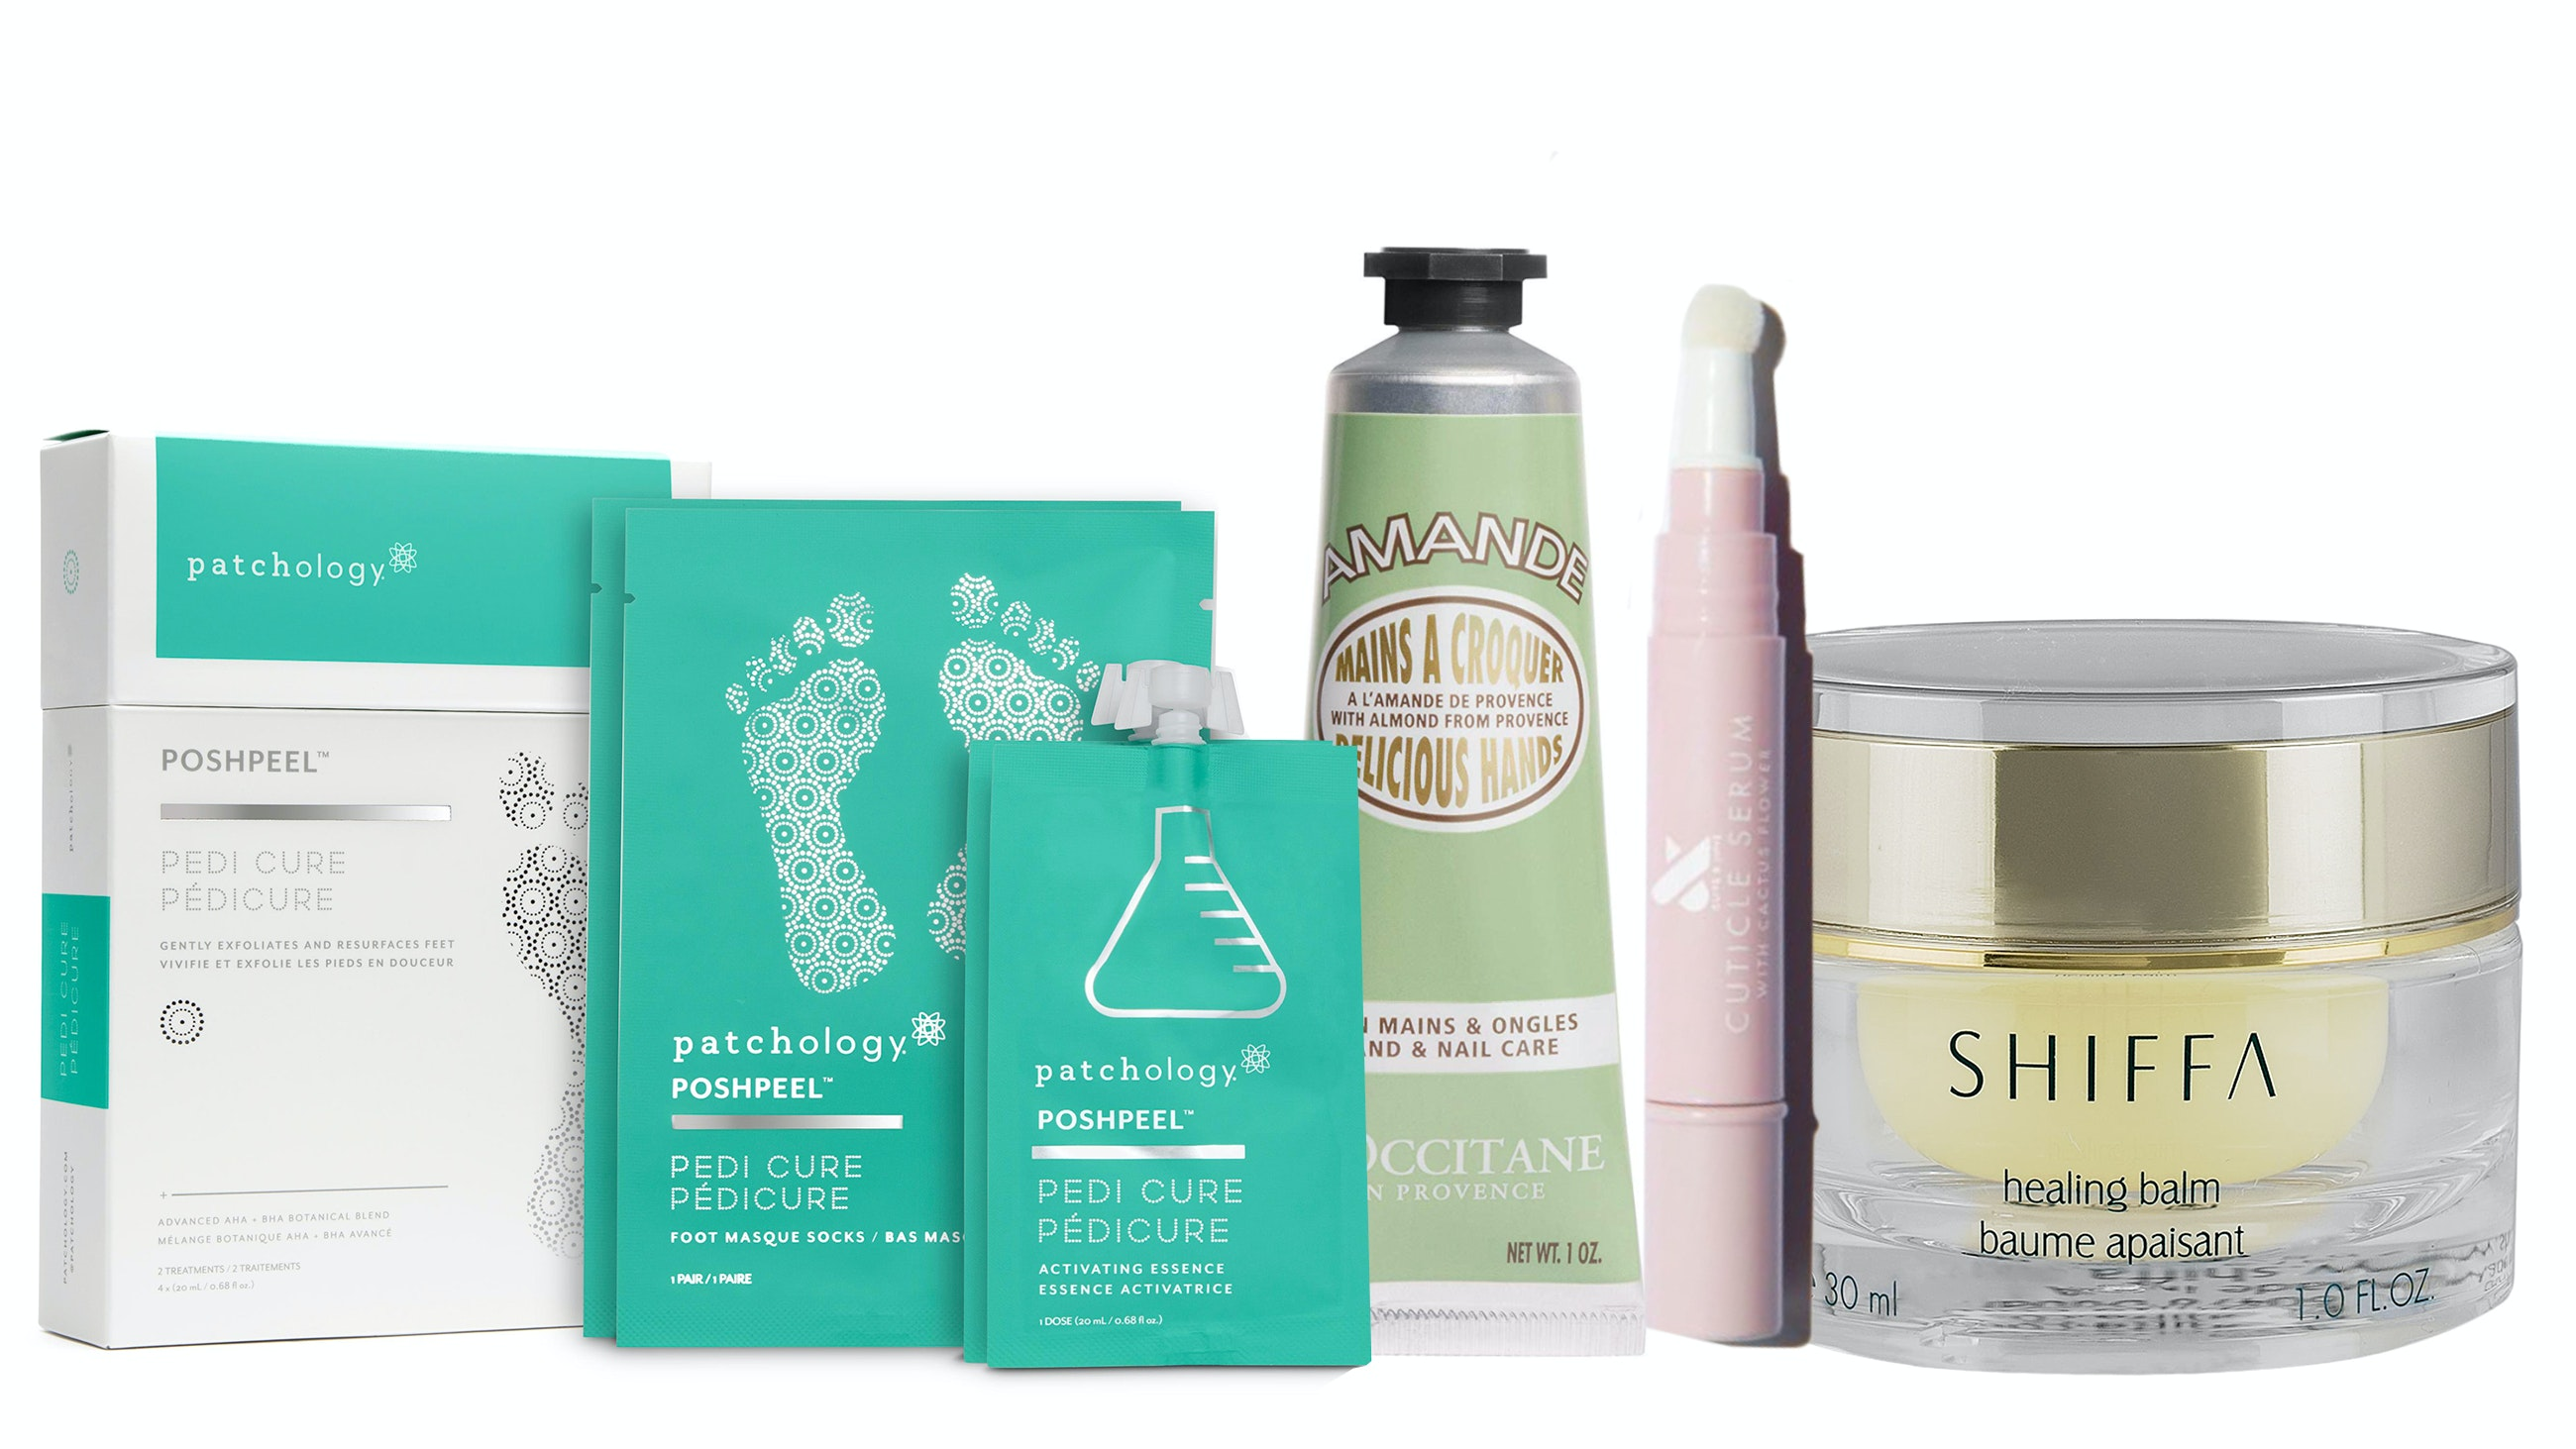 post-vacation body products